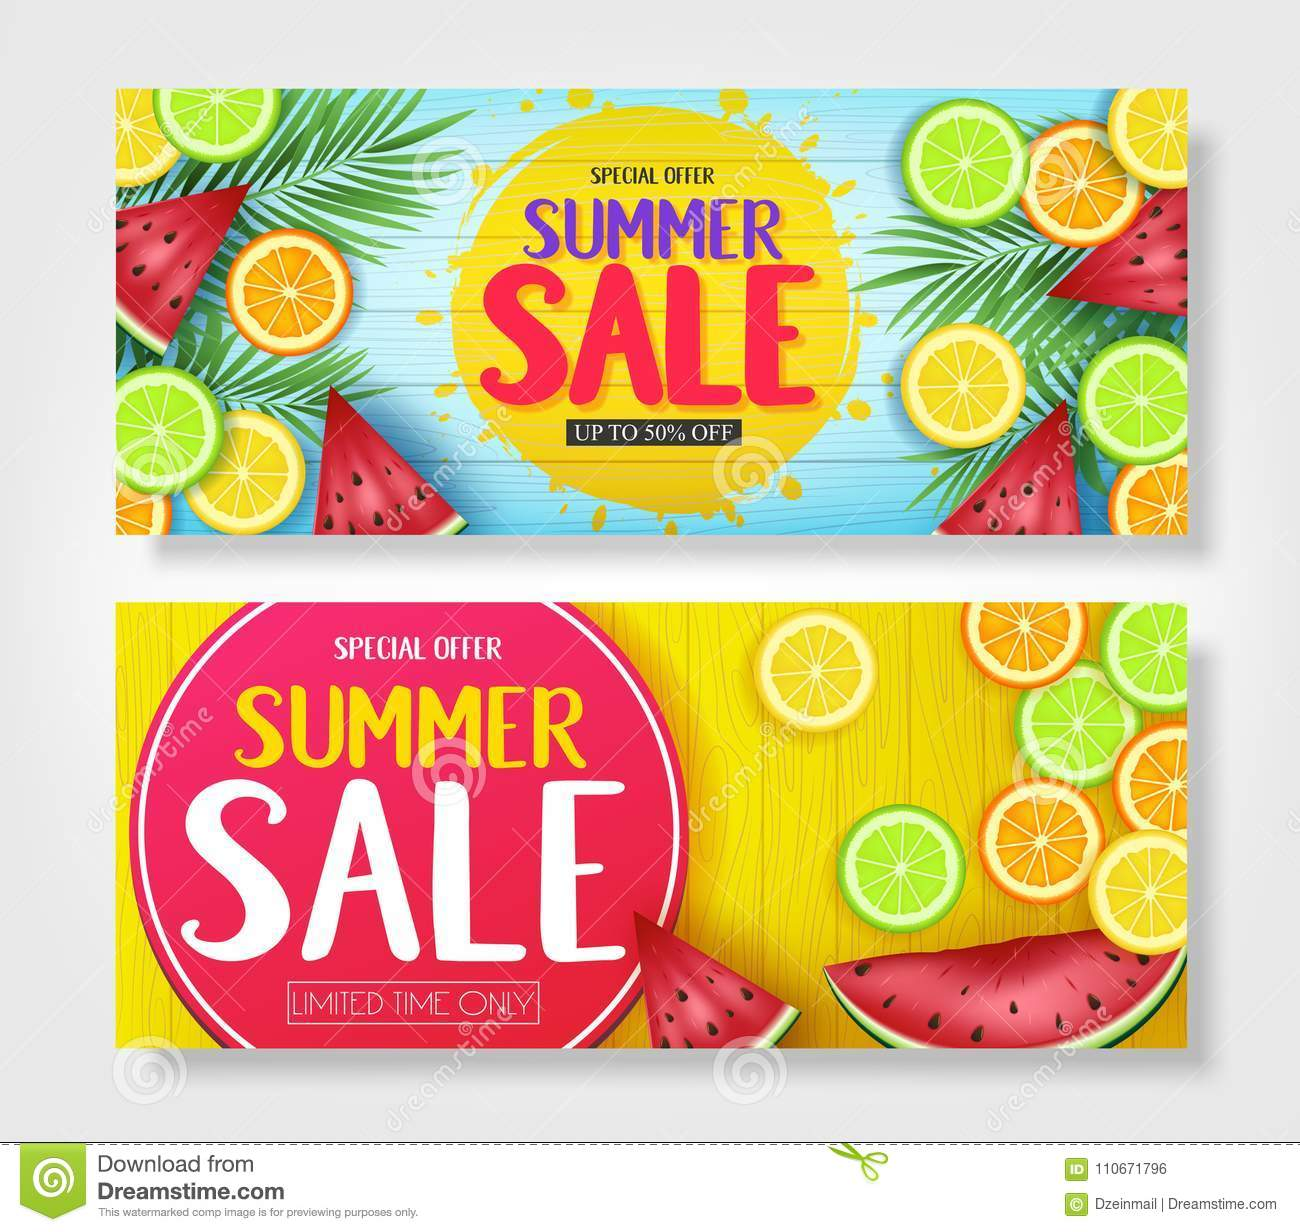 Fruity Summer Sale Colorful Banners with Watermelon, Orange, Lime and Lemon Tropical Fruits